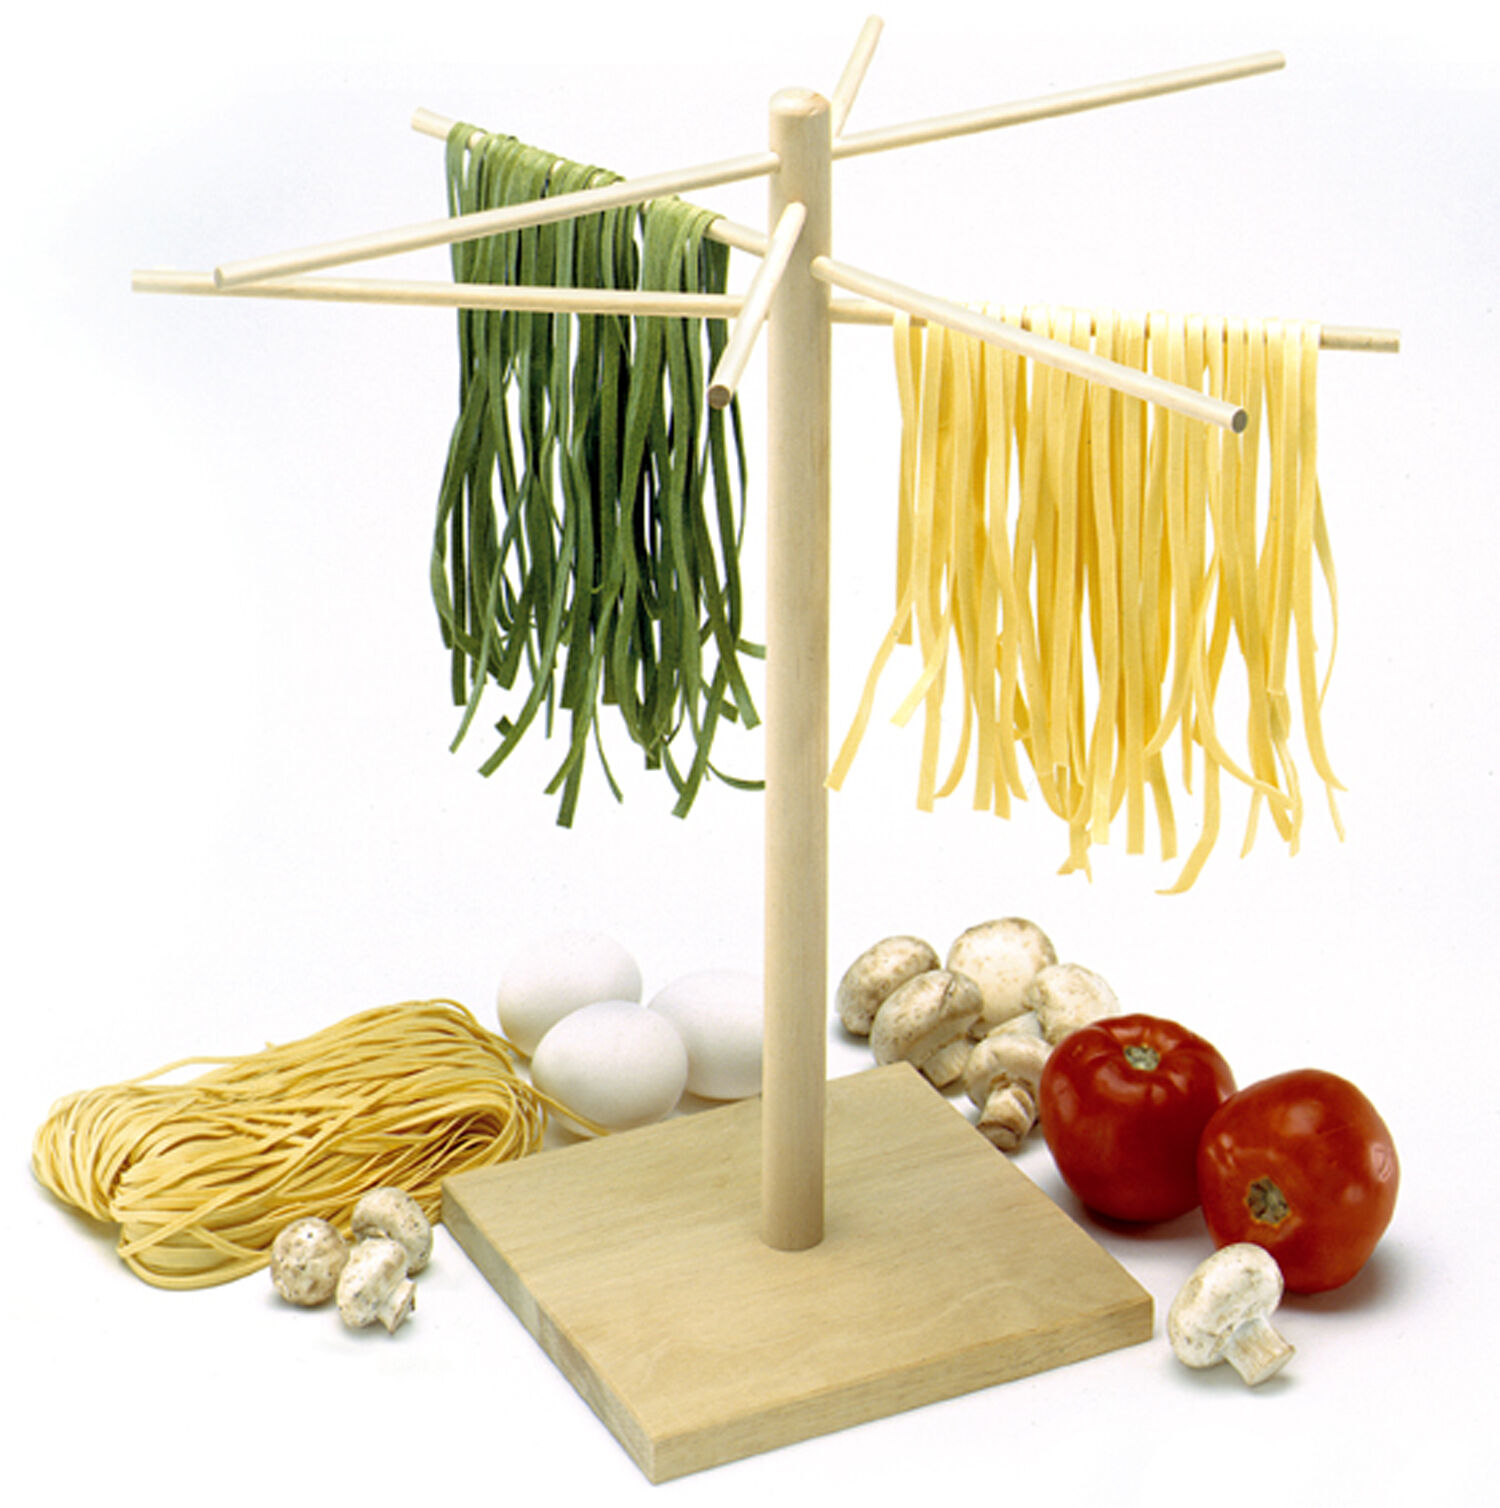 Norpro 1048 Deluxe 16.5 Pasta Drying Rack Stand With 8 Drying Arms on Sale